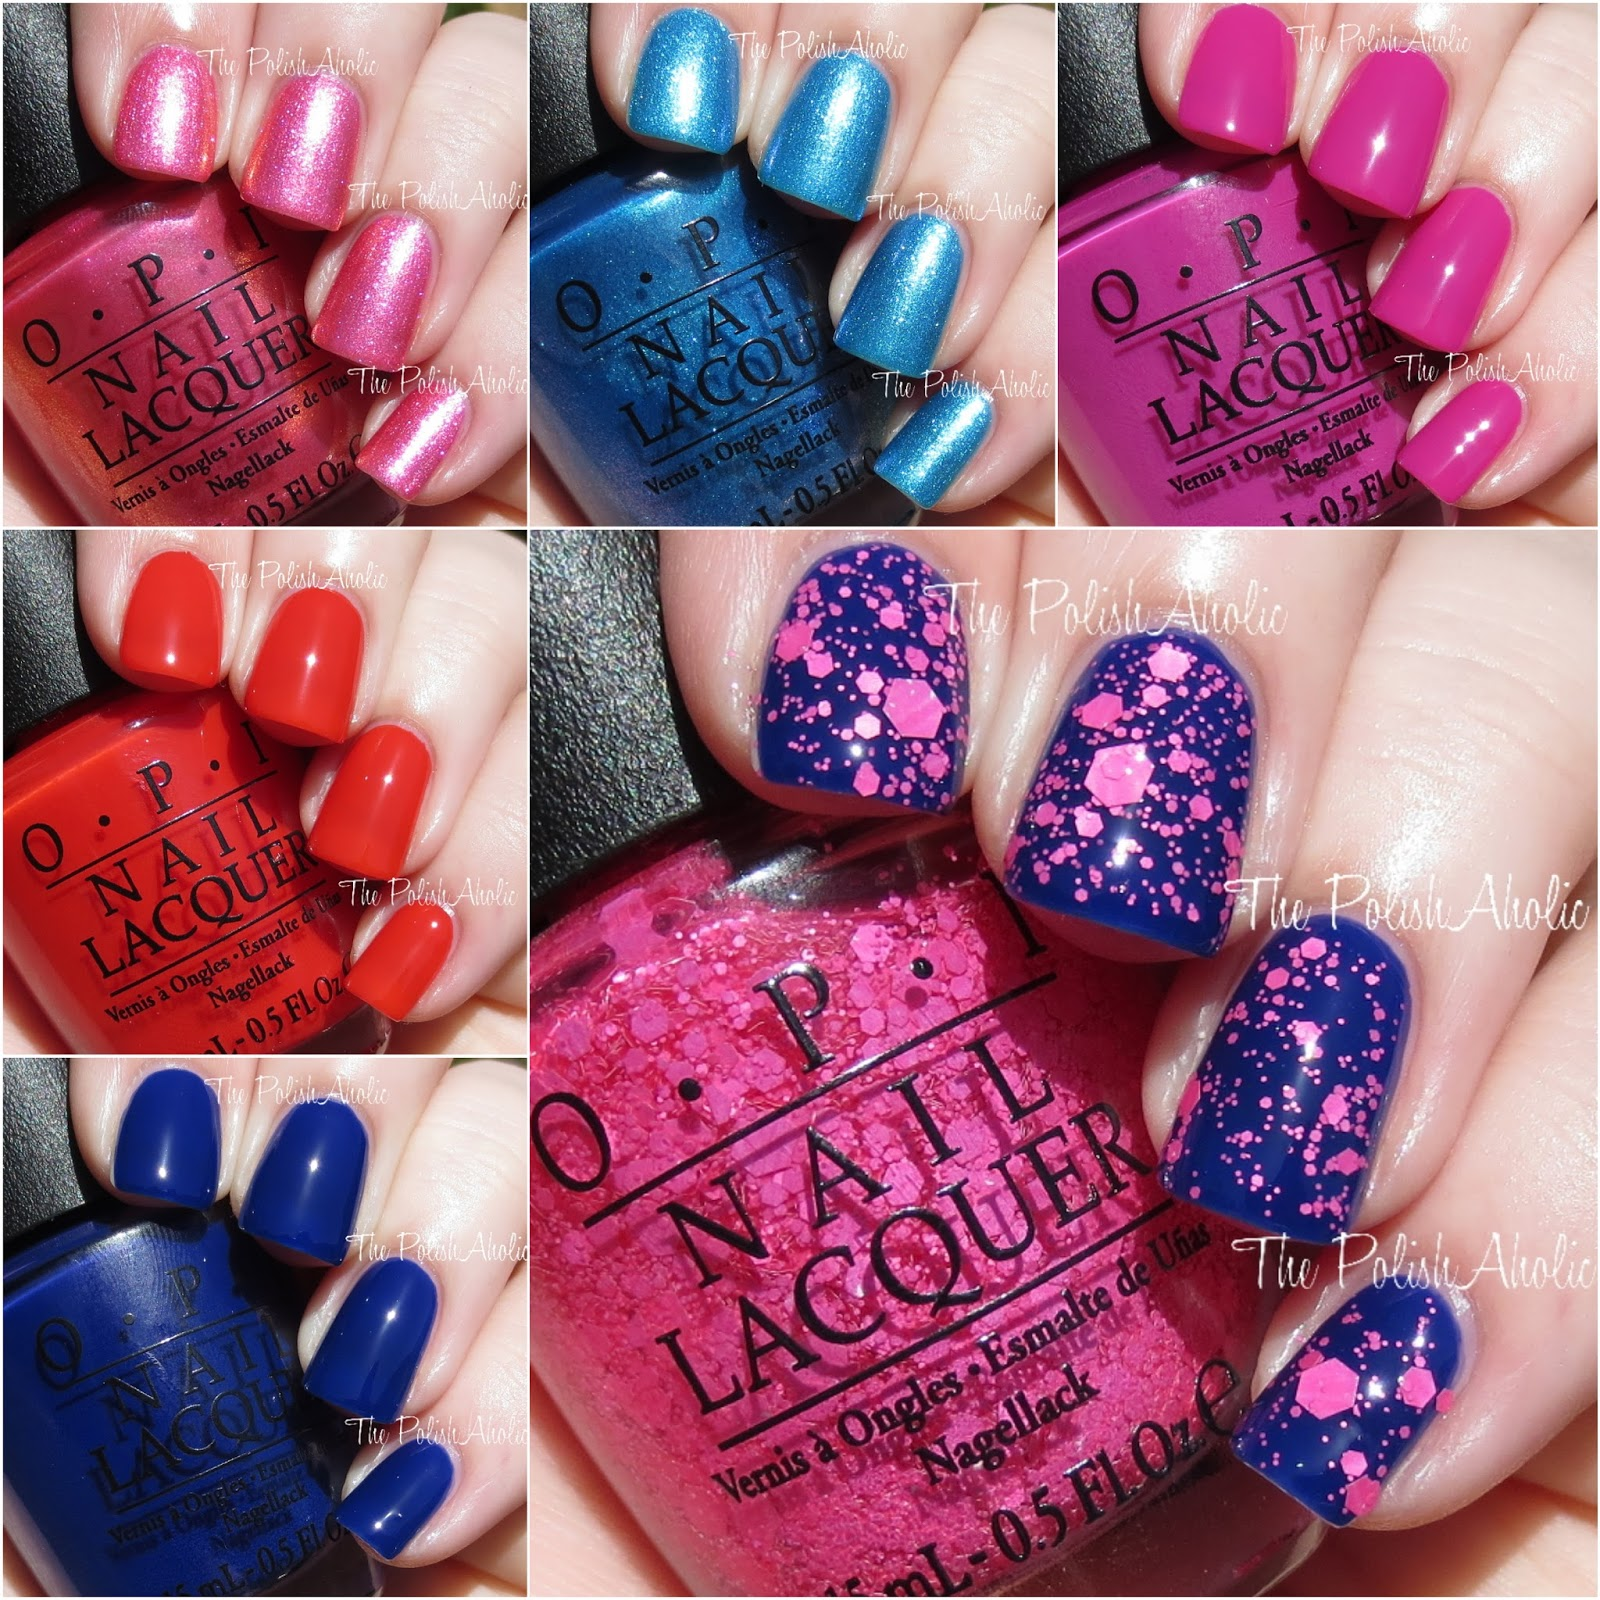 OPI 2015 Brights Collection Swatches Review